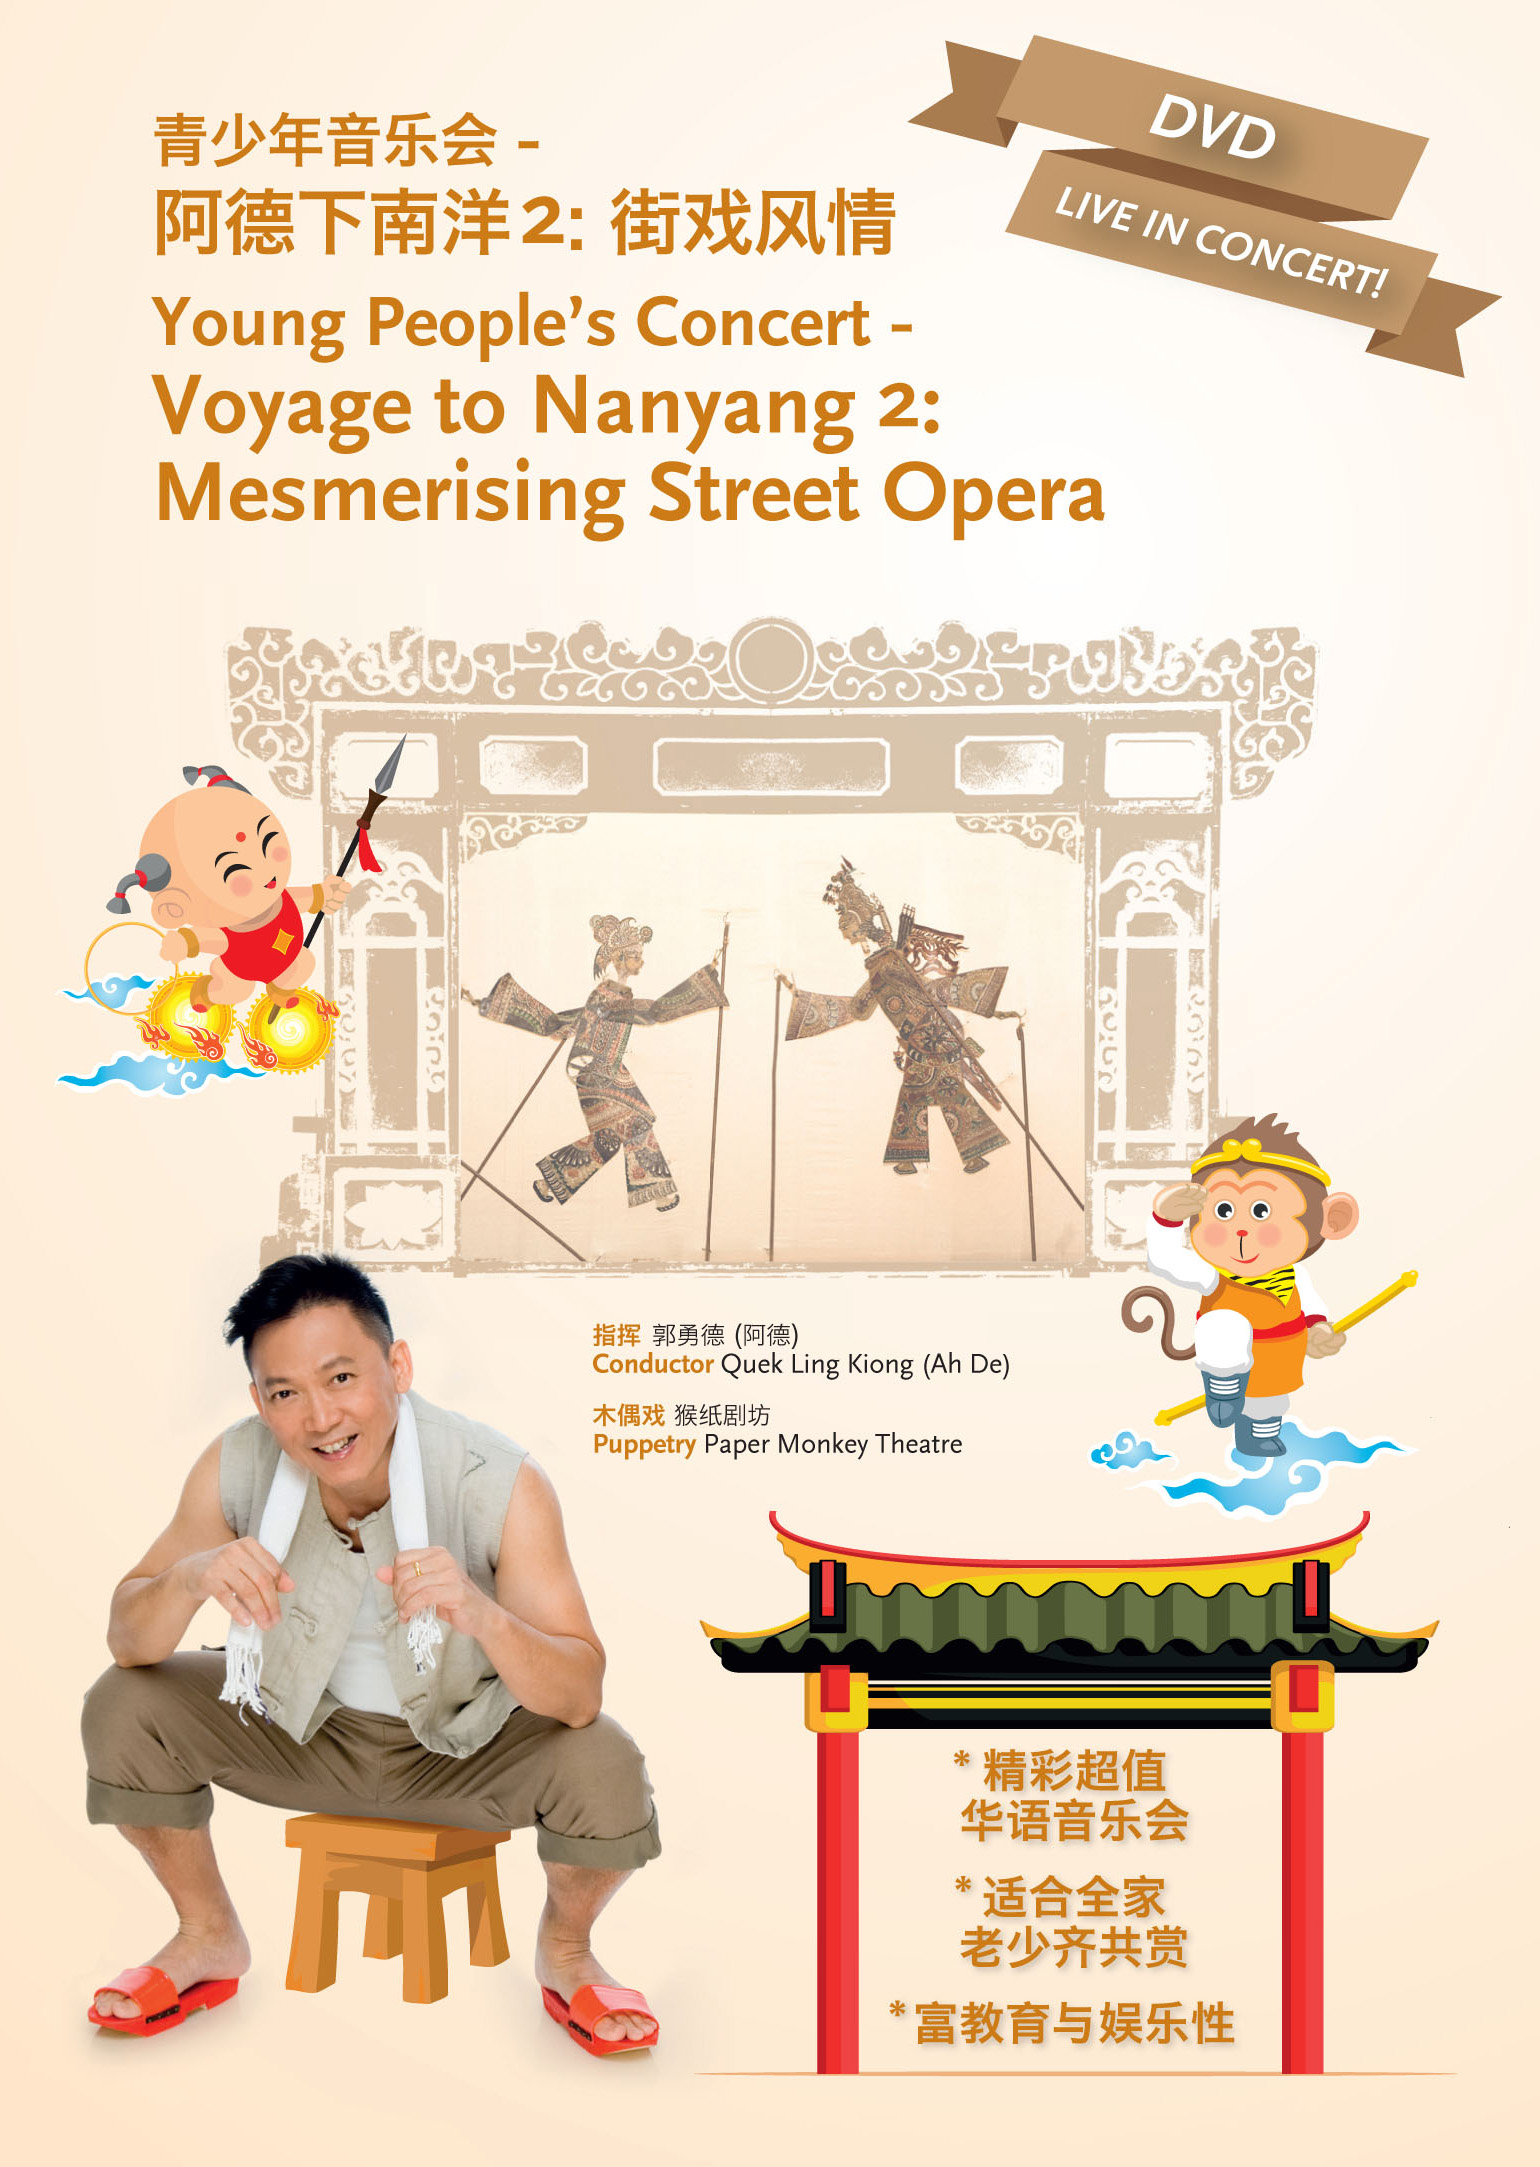 Voyage-to-Nanyang-2-DVD CDs & Recordings